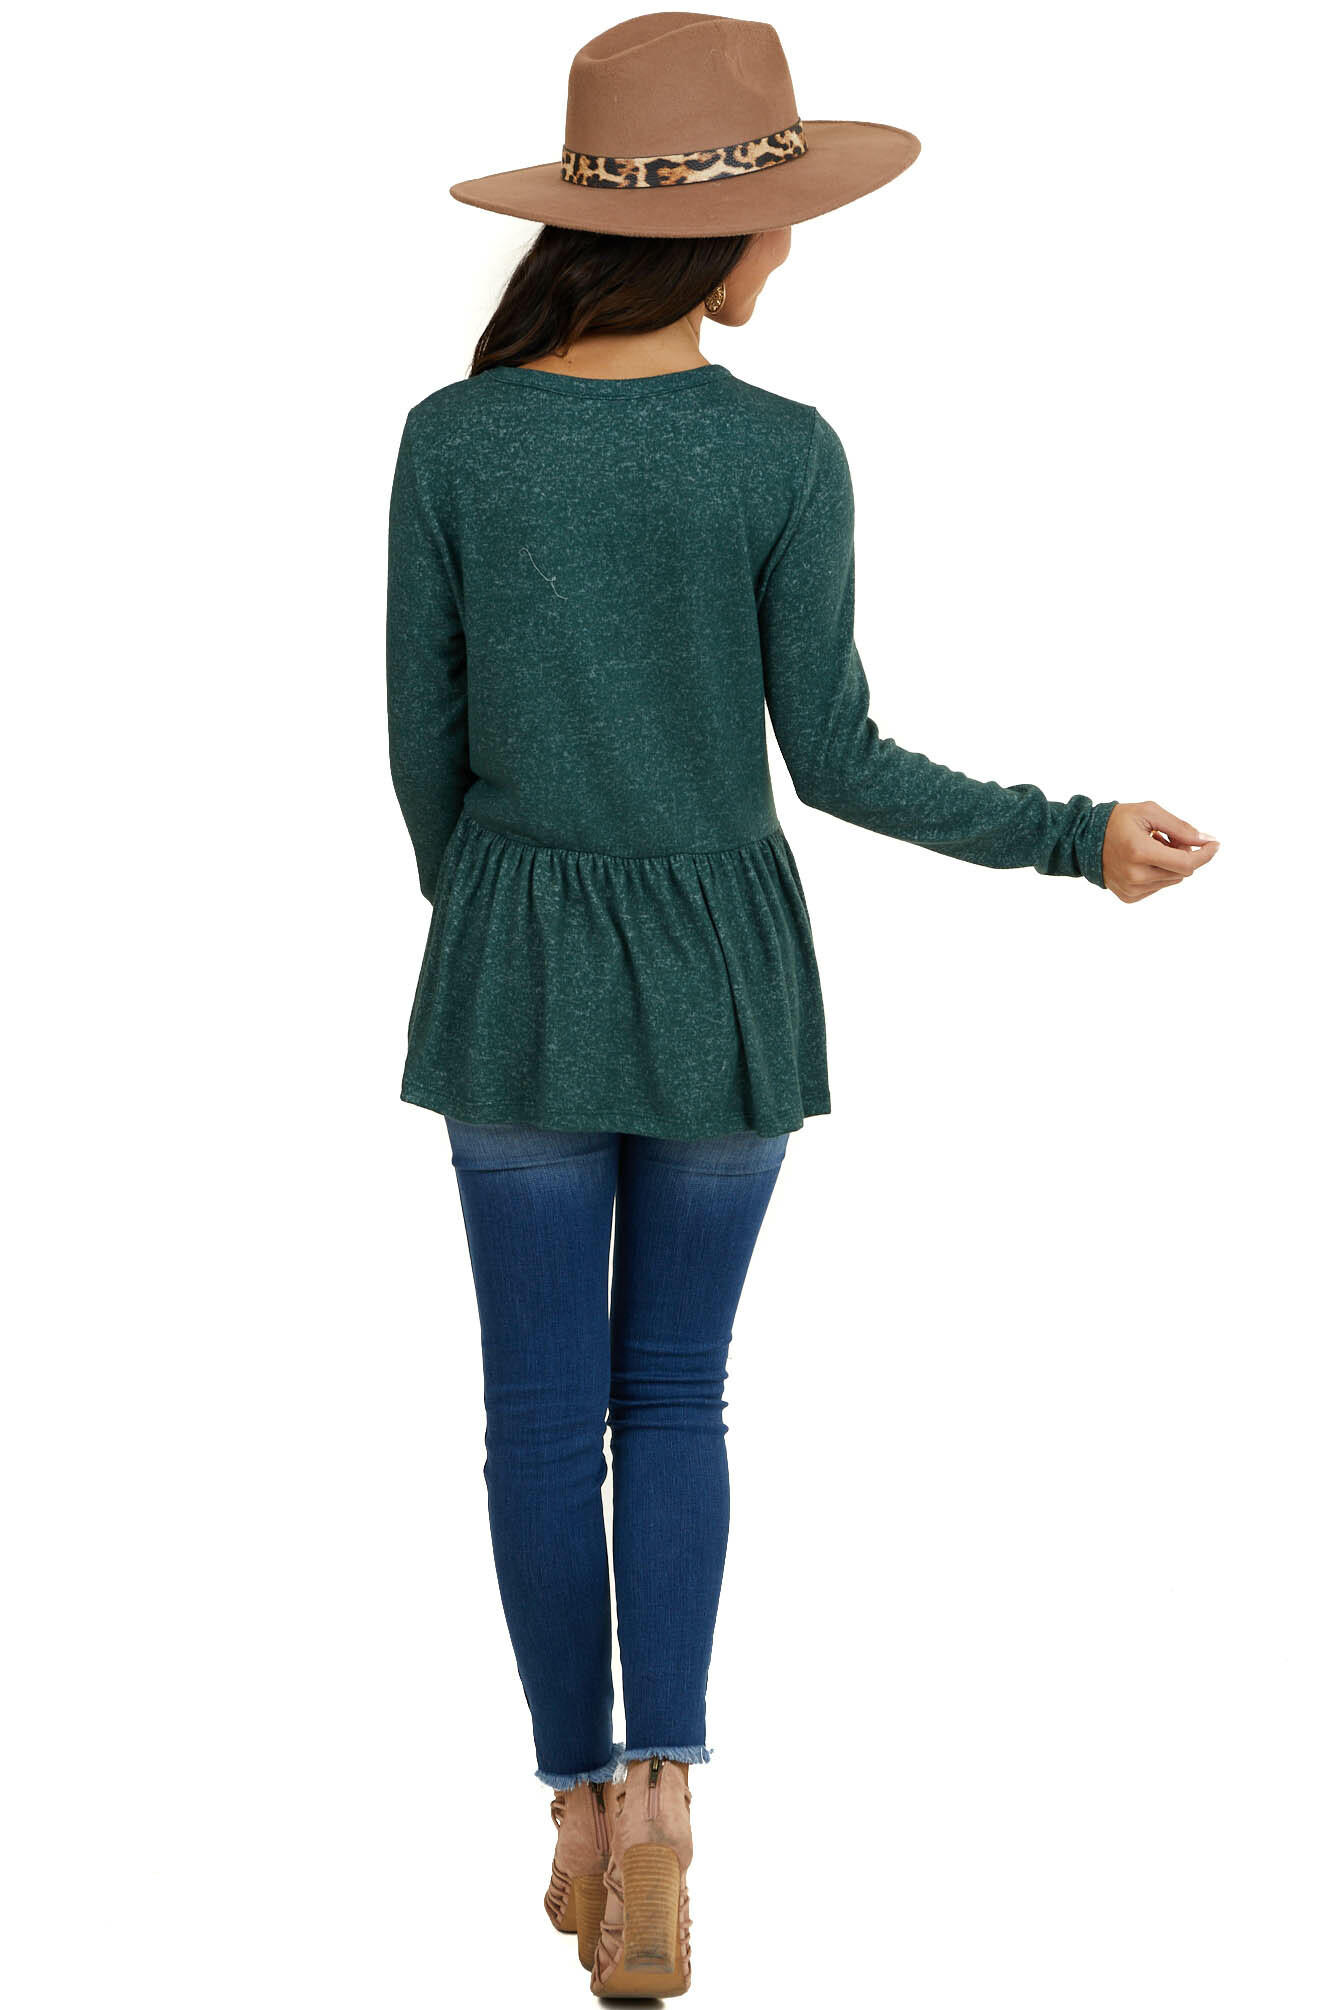 Heathered Pine Green Soft Knit Peplum Top with Long Sleeves